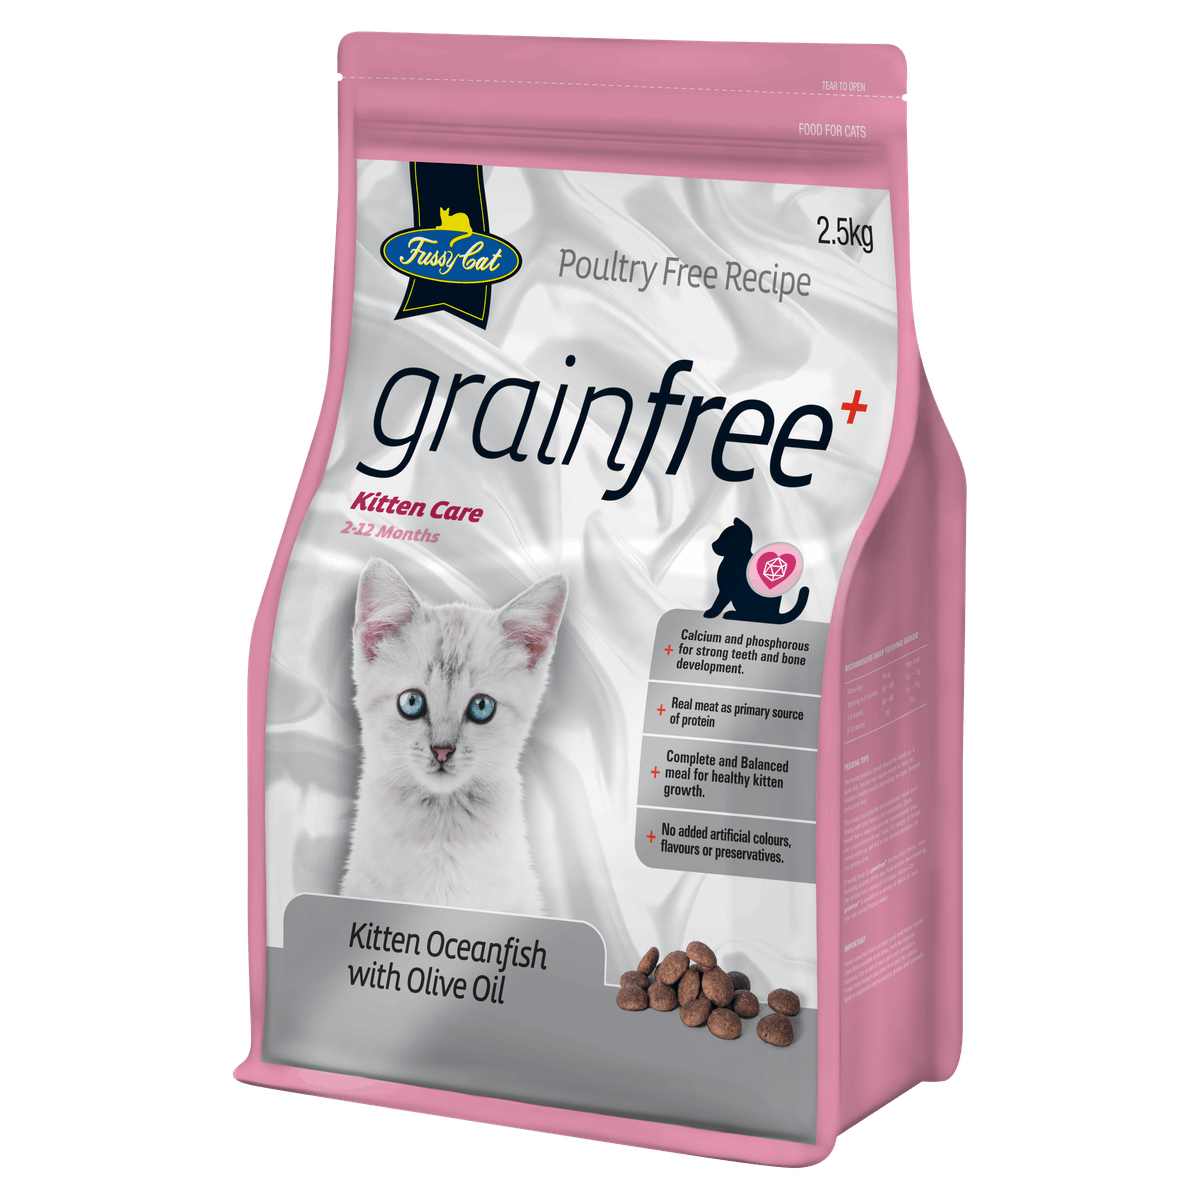 Fussy Cat | Kitten Oceanfish with Olive Oil | Dry cat food | Right of pack